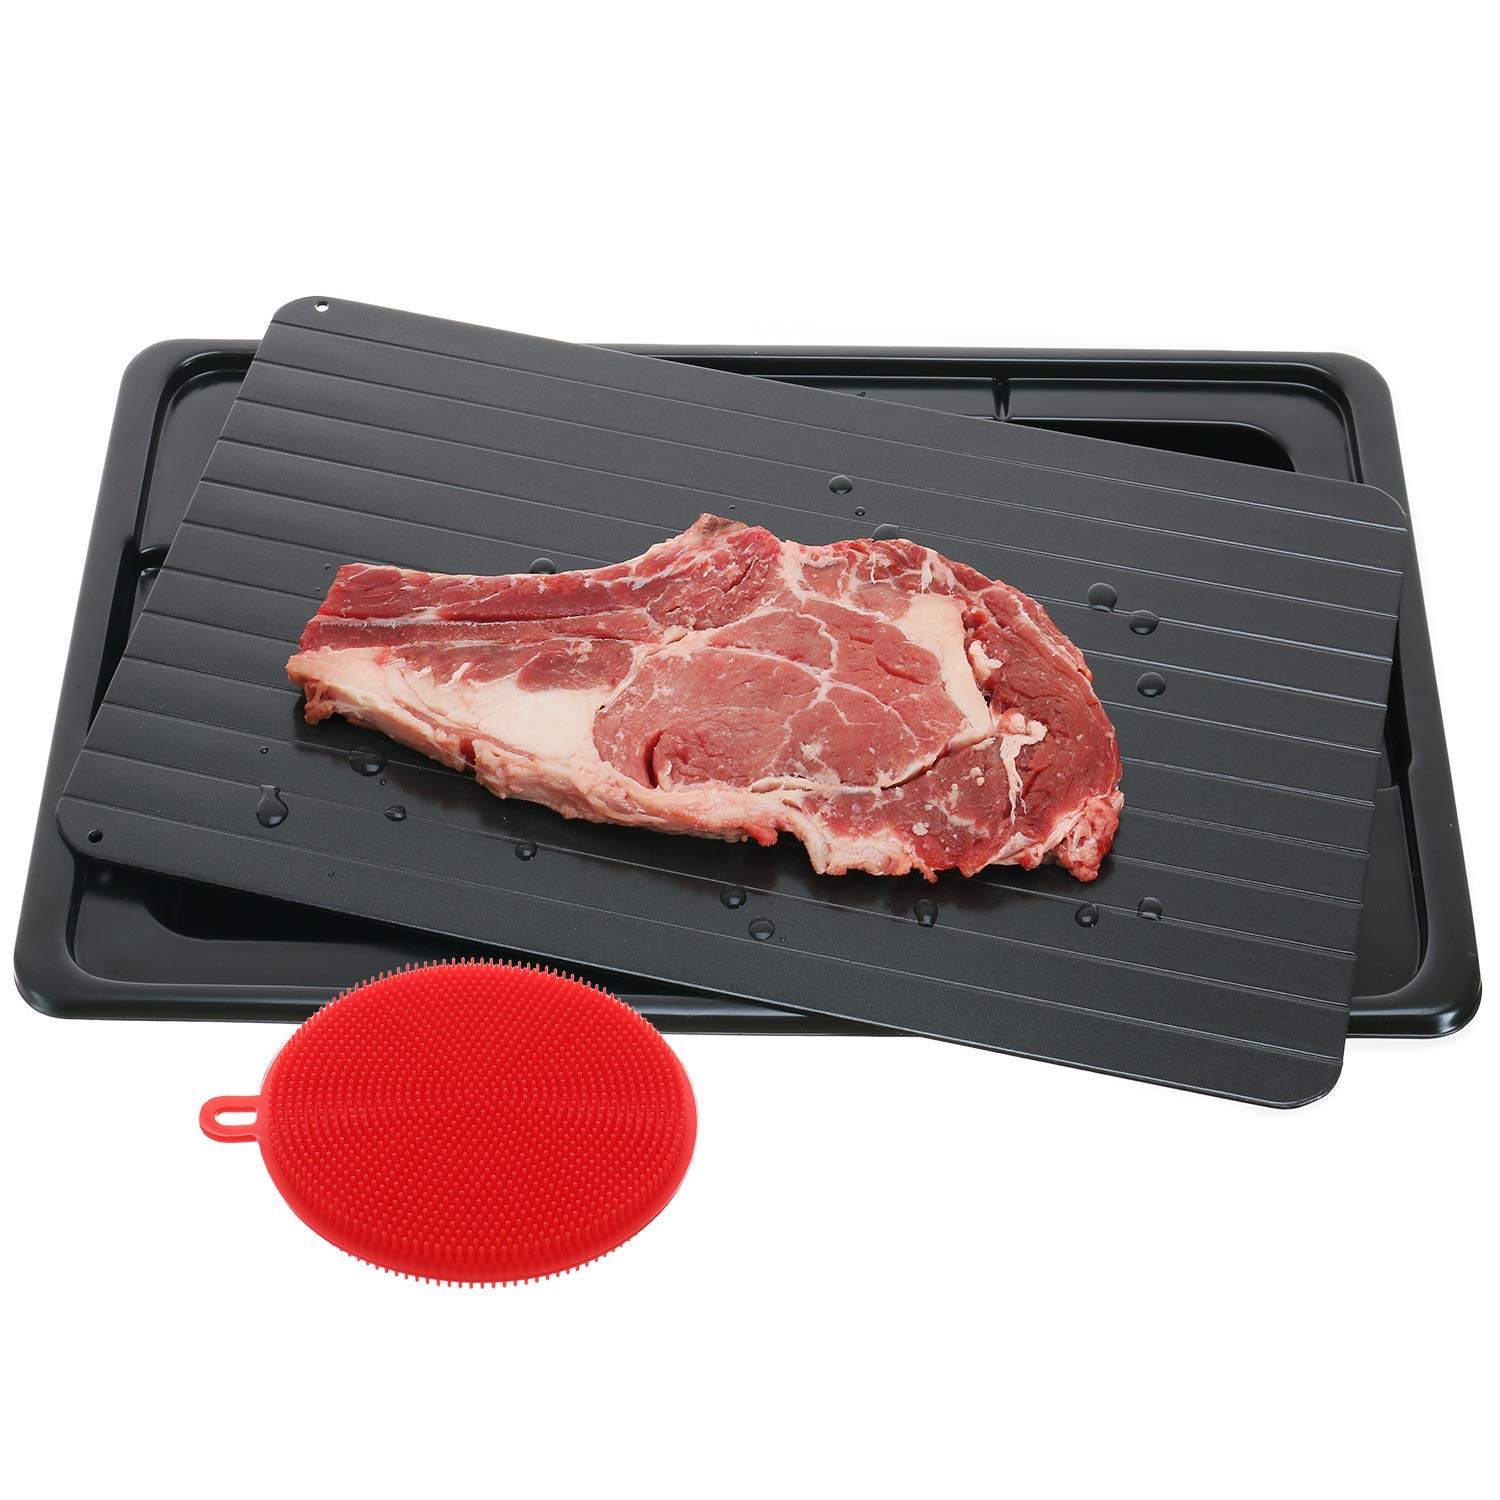 Defrosting Tray Frozen Food Thawing Plate For Fast Quick Rapid Meat Defrosting Chicken The Safest No Electricity No MicrowaDefrosting Tray Frozen Food Thawing Plate For Fast Quick Rapid Meat Defrosting Chicken The Safest No Electricity No Microwa